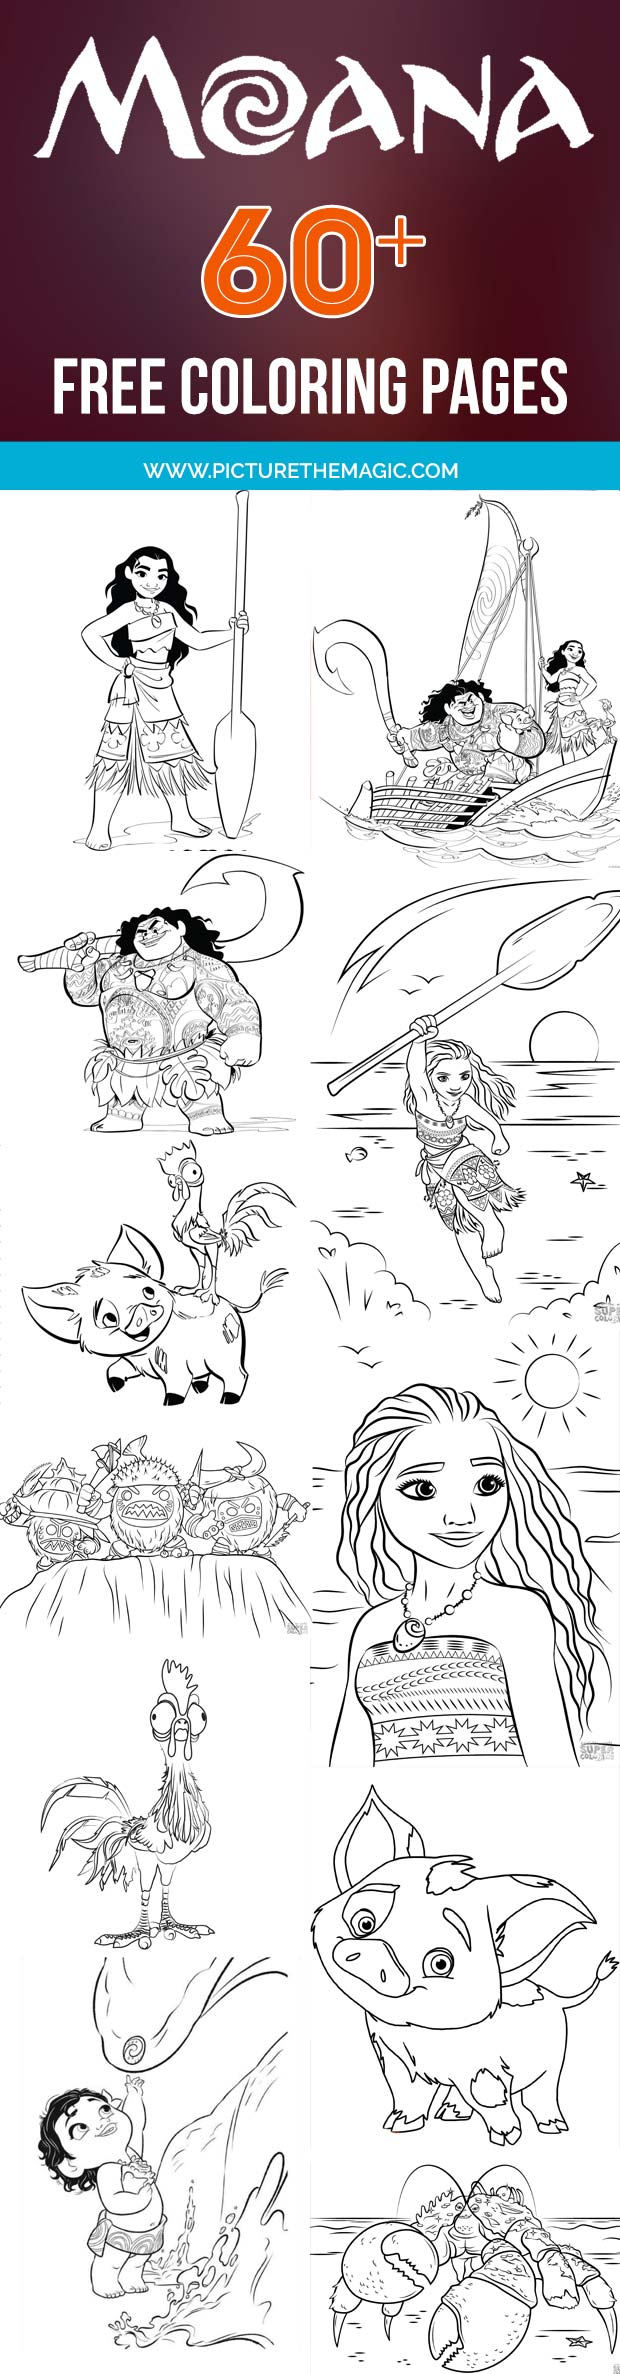 FUN! Over 60 free Moana Coloring Pages. Maui, Pua, Hei Hei and all of Moana's friends from the movie. Free Moana coloring sheets.